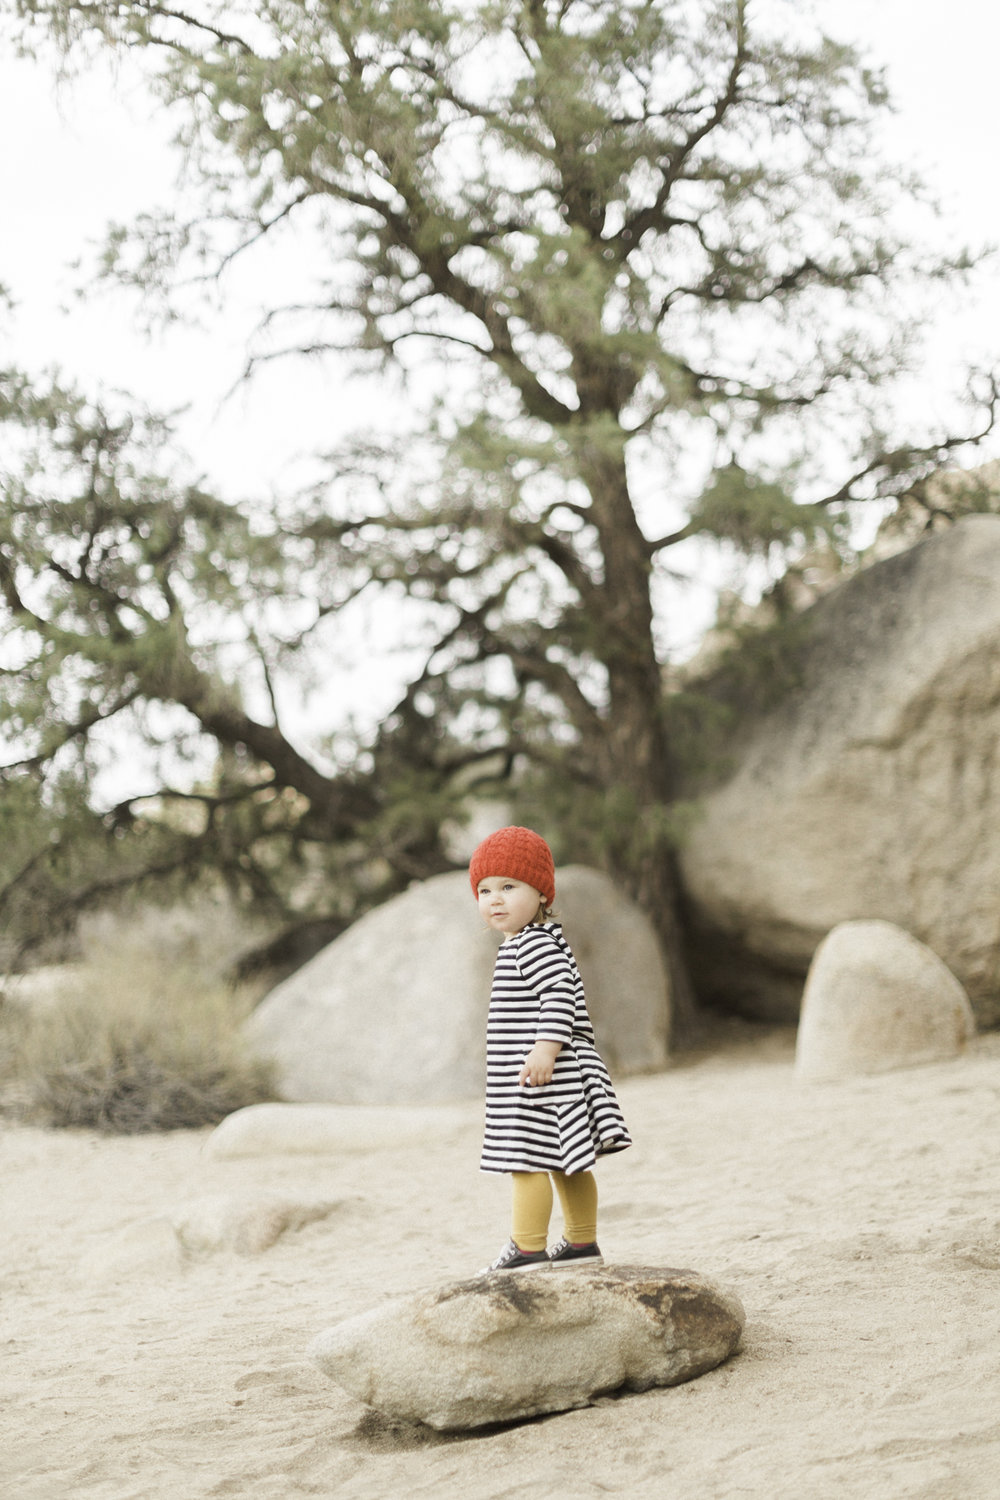 Joshua-Tree-calgary-kids-photography-shop-the-skinny-2.jpg